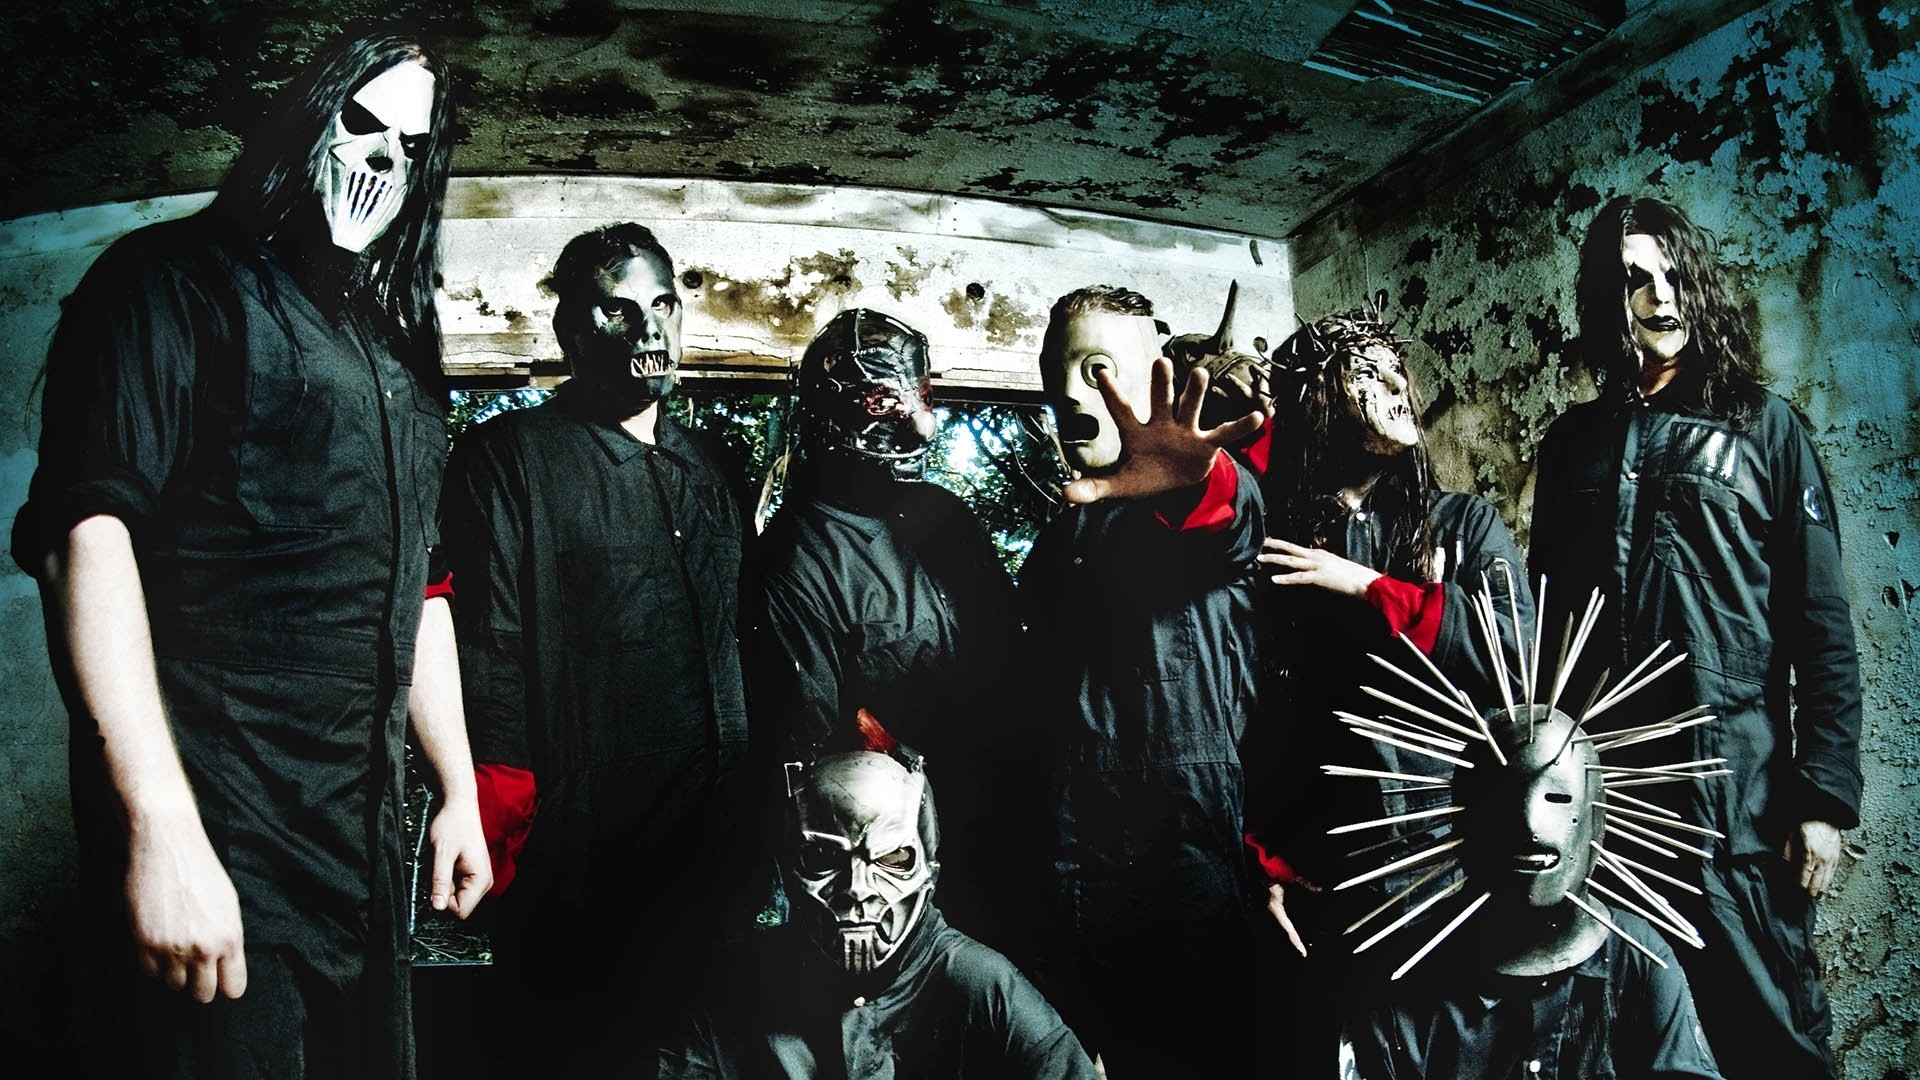 Slipknot announce headlining tour with Lamb of God, Bullet For My  Valentine, and Motionless In White